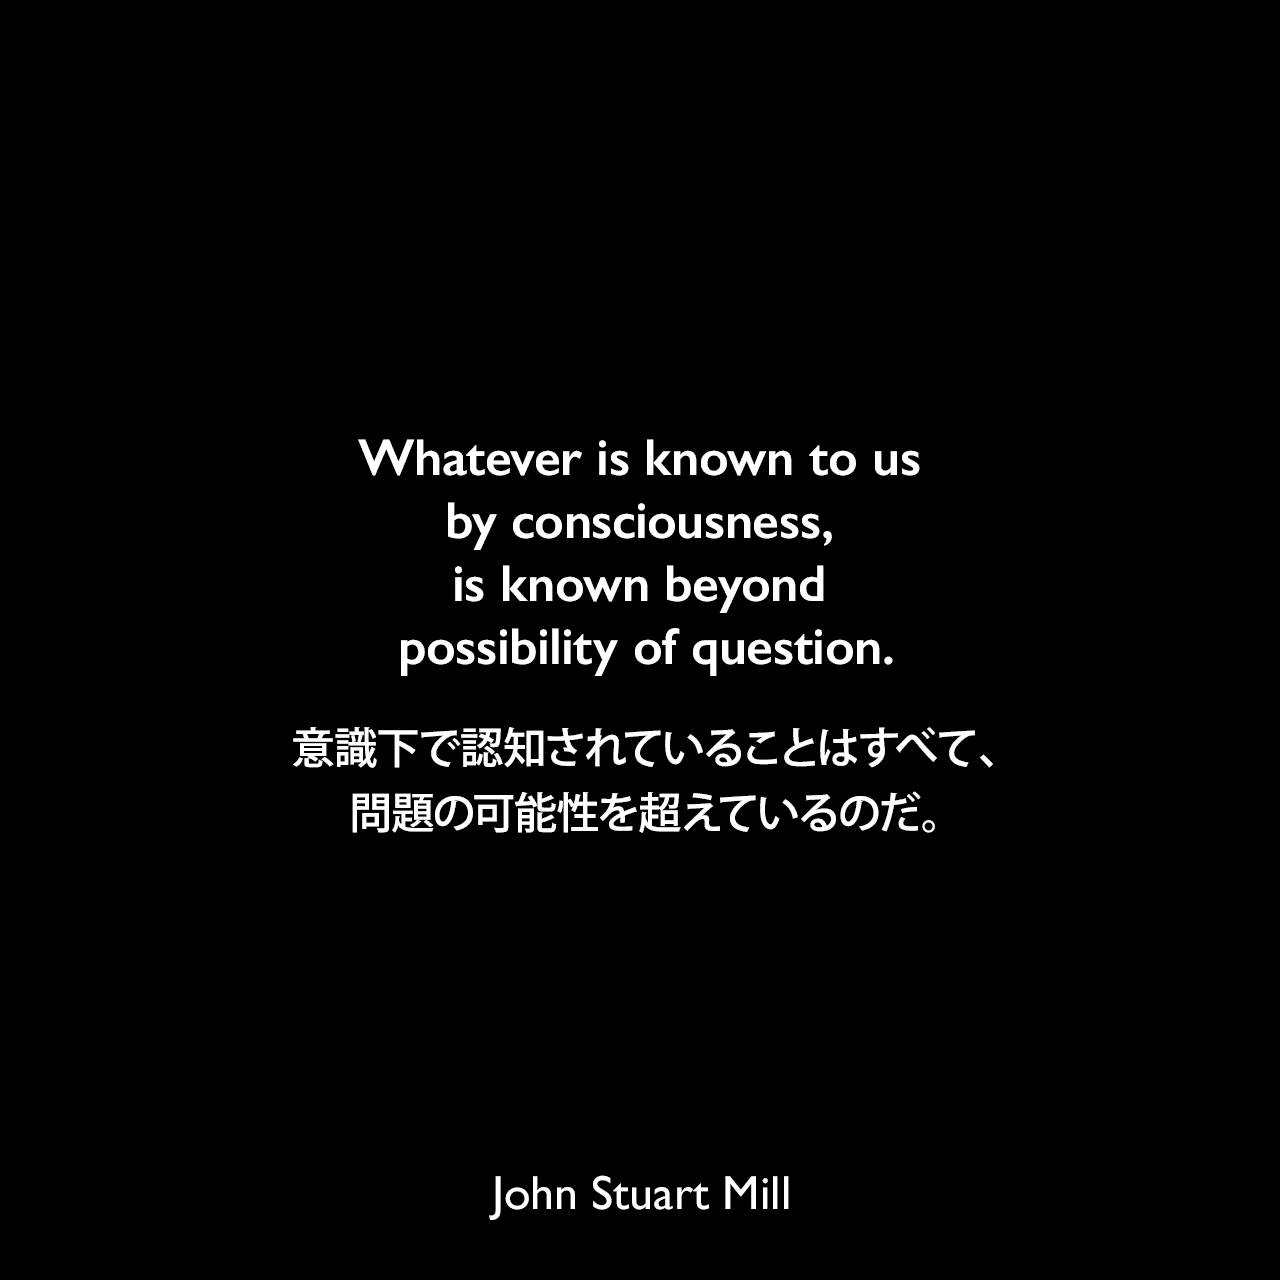 Whatever is known to us by consciousness, is known beyond possibility of question.意識下で認知されていることはすべて、問題の可能性を超えているのだ。- ジョン・スチュアート・ミルによる本「論理学体系 (A System of Logic, Ratiocinative and Inductive)」よりJohn Stuart Mill